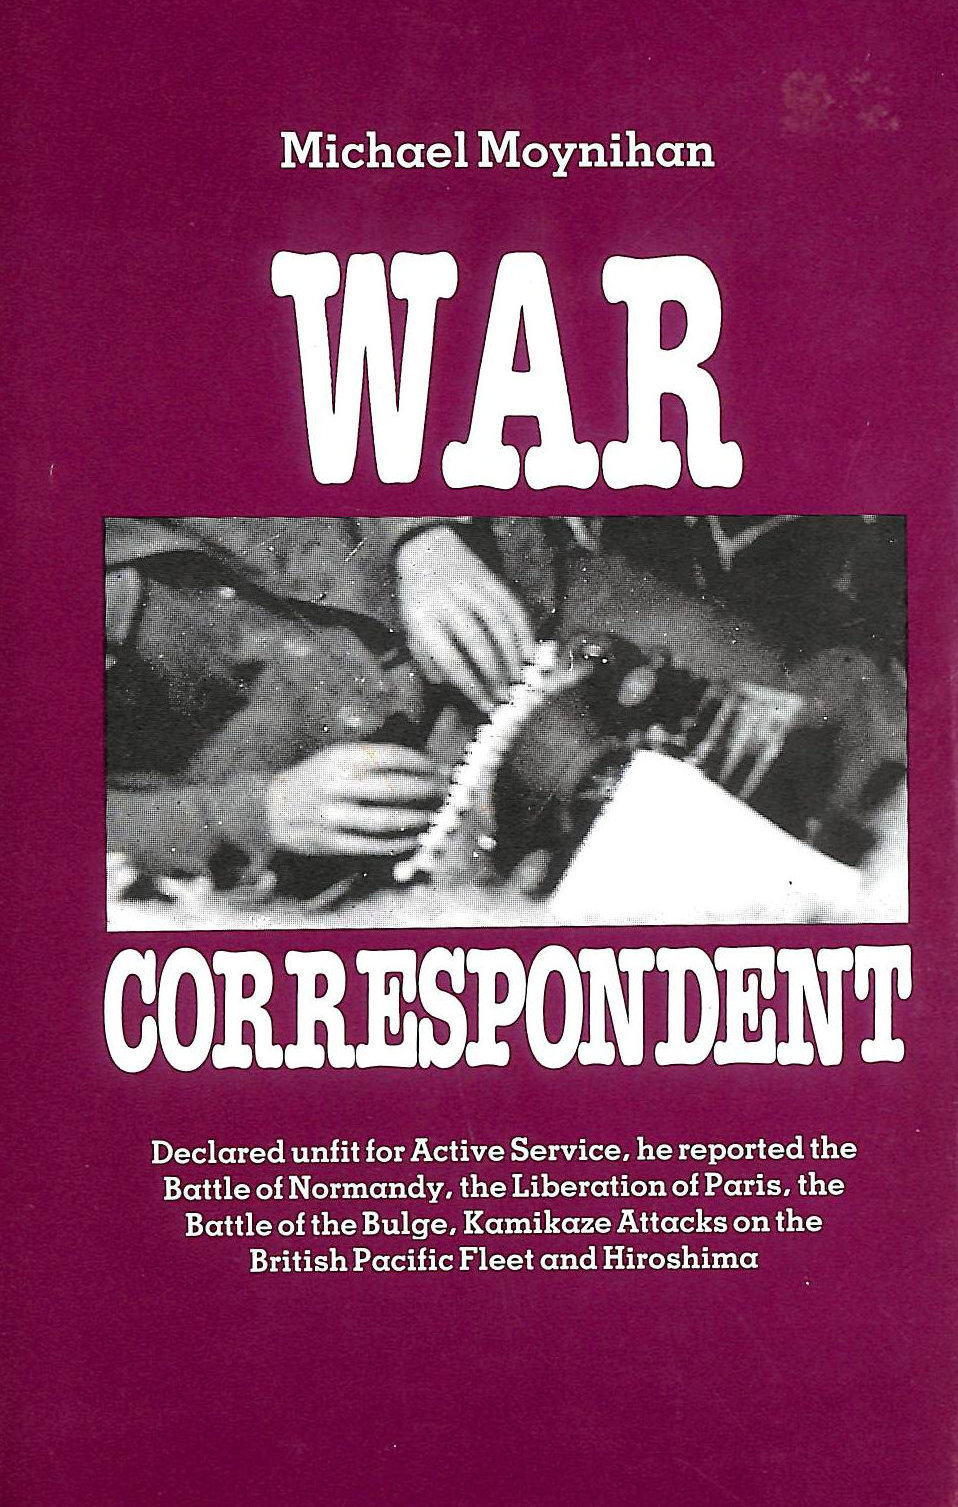 Image for War Correspondent: Decreed Unfit for Service, the Author Saw the Normandy Landings, Arnhem, the Battle of the Bulge and Kamikaze Attacks